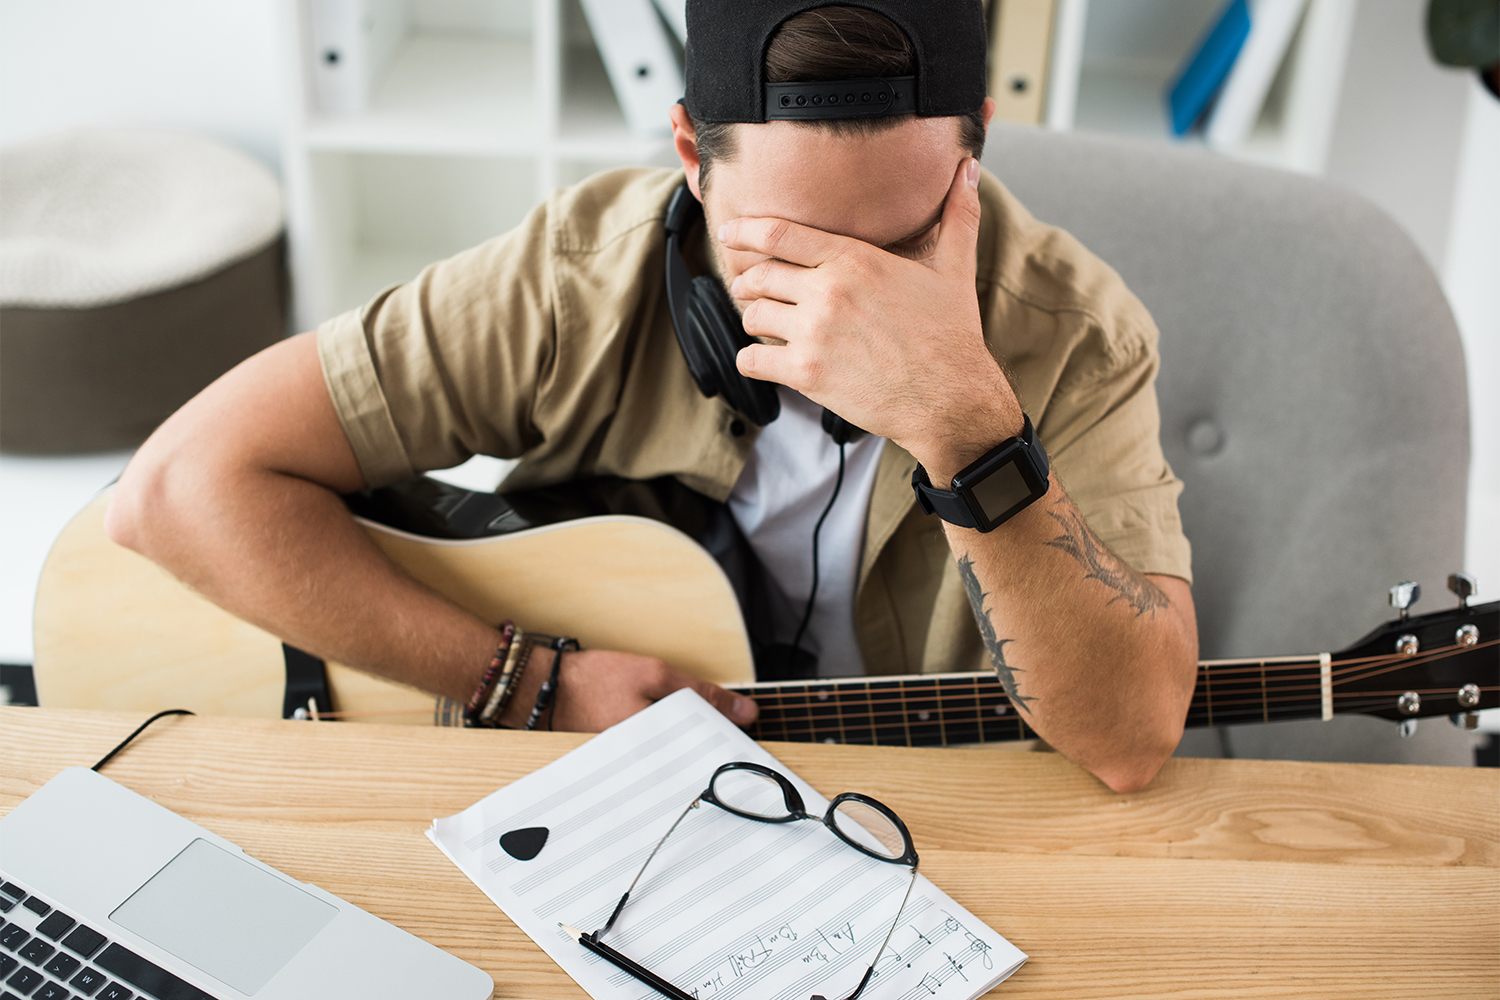 How To Know When To Stop Working On A Song